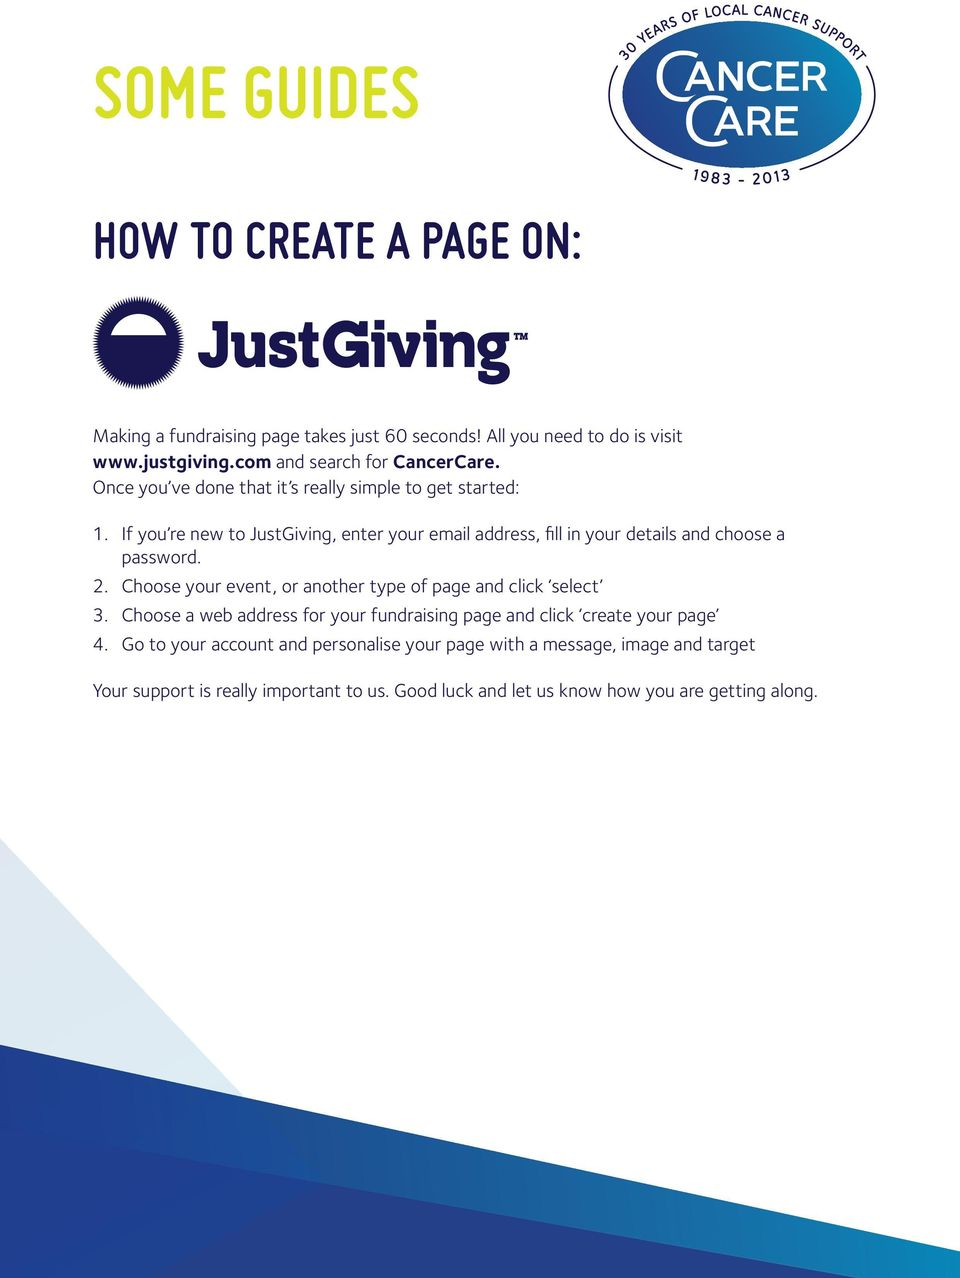 If you re new to JustGiving, enter your email address, fill in your details and choose a password. 2.